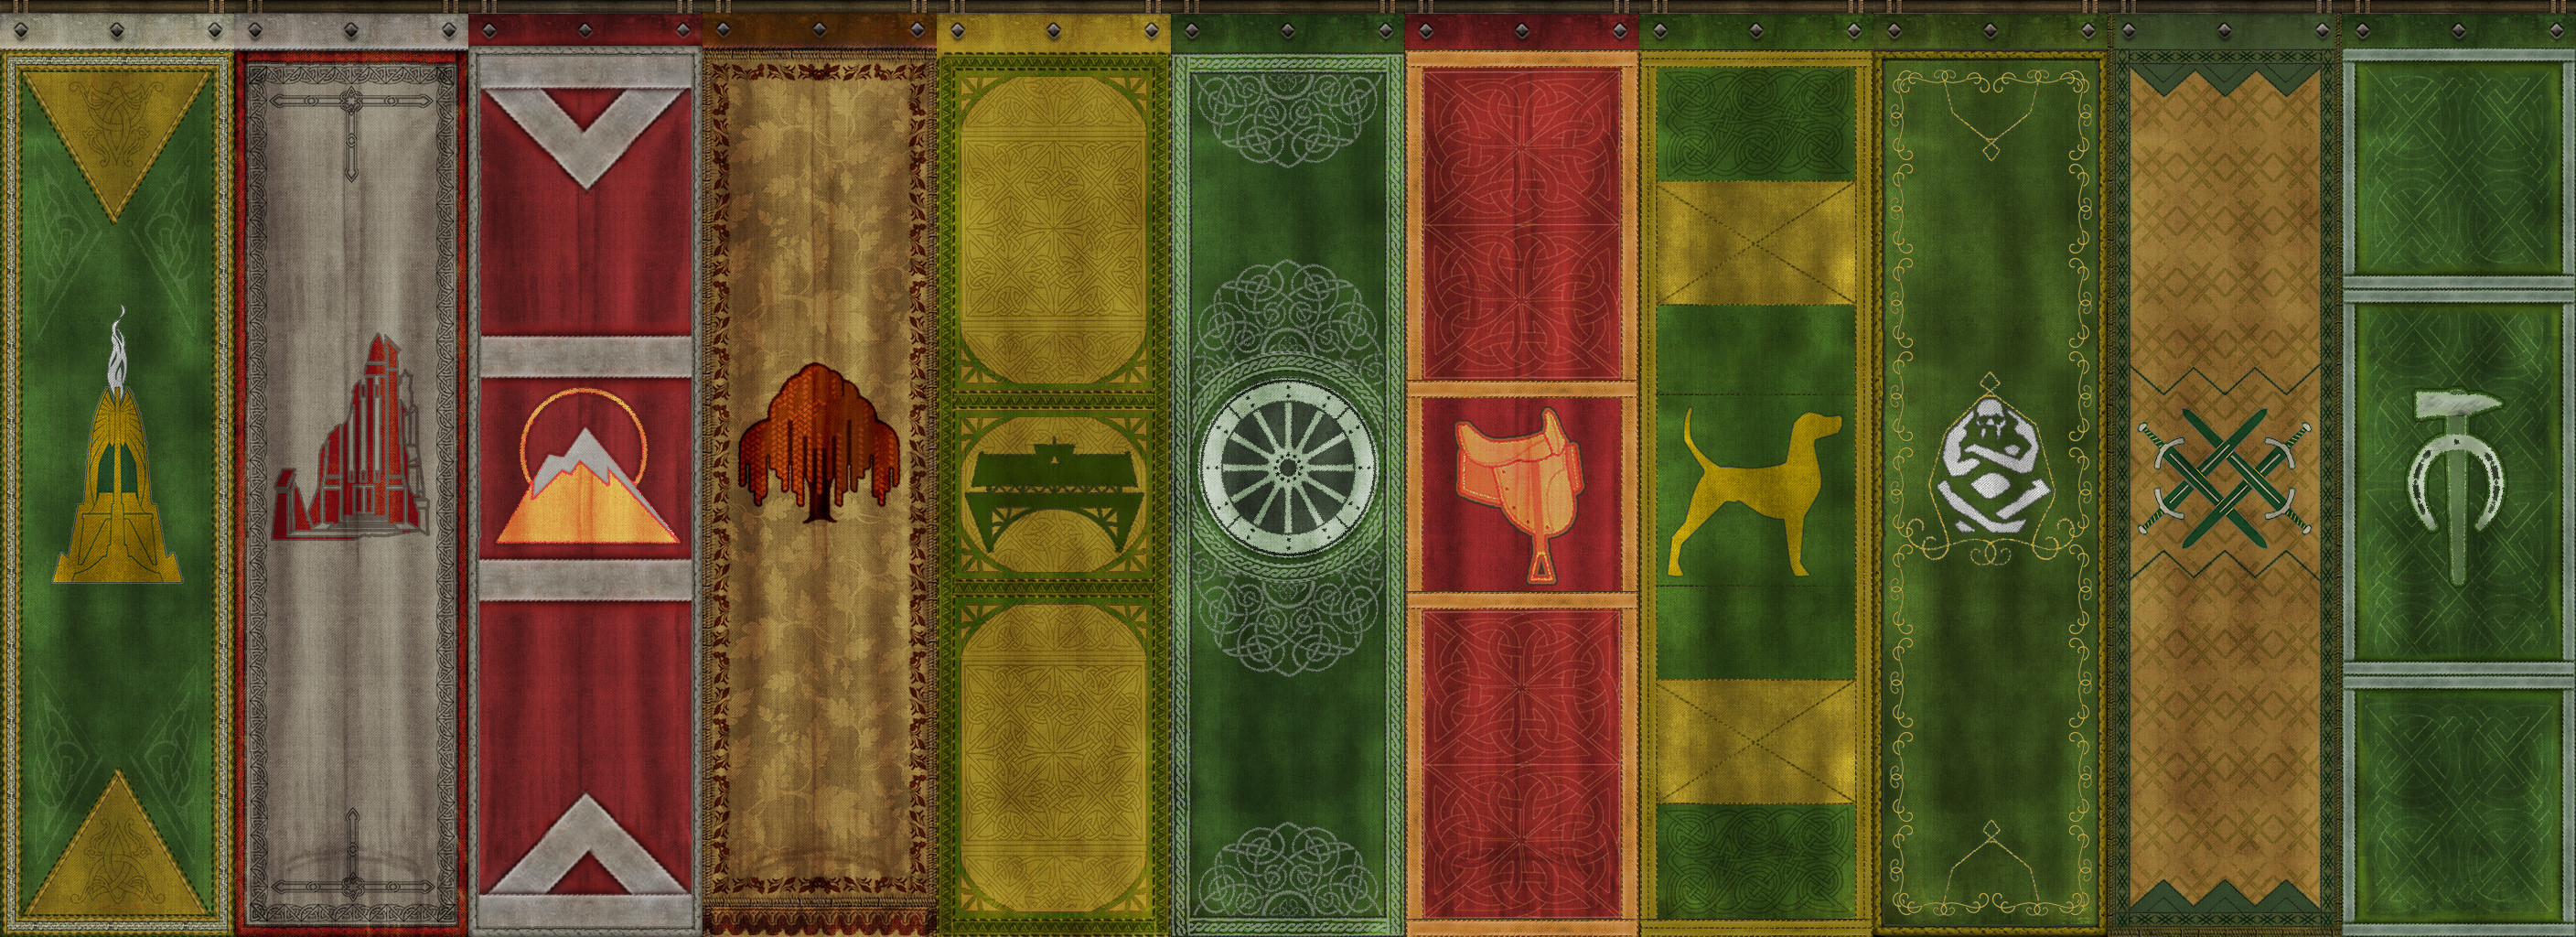 Heraldry Banners